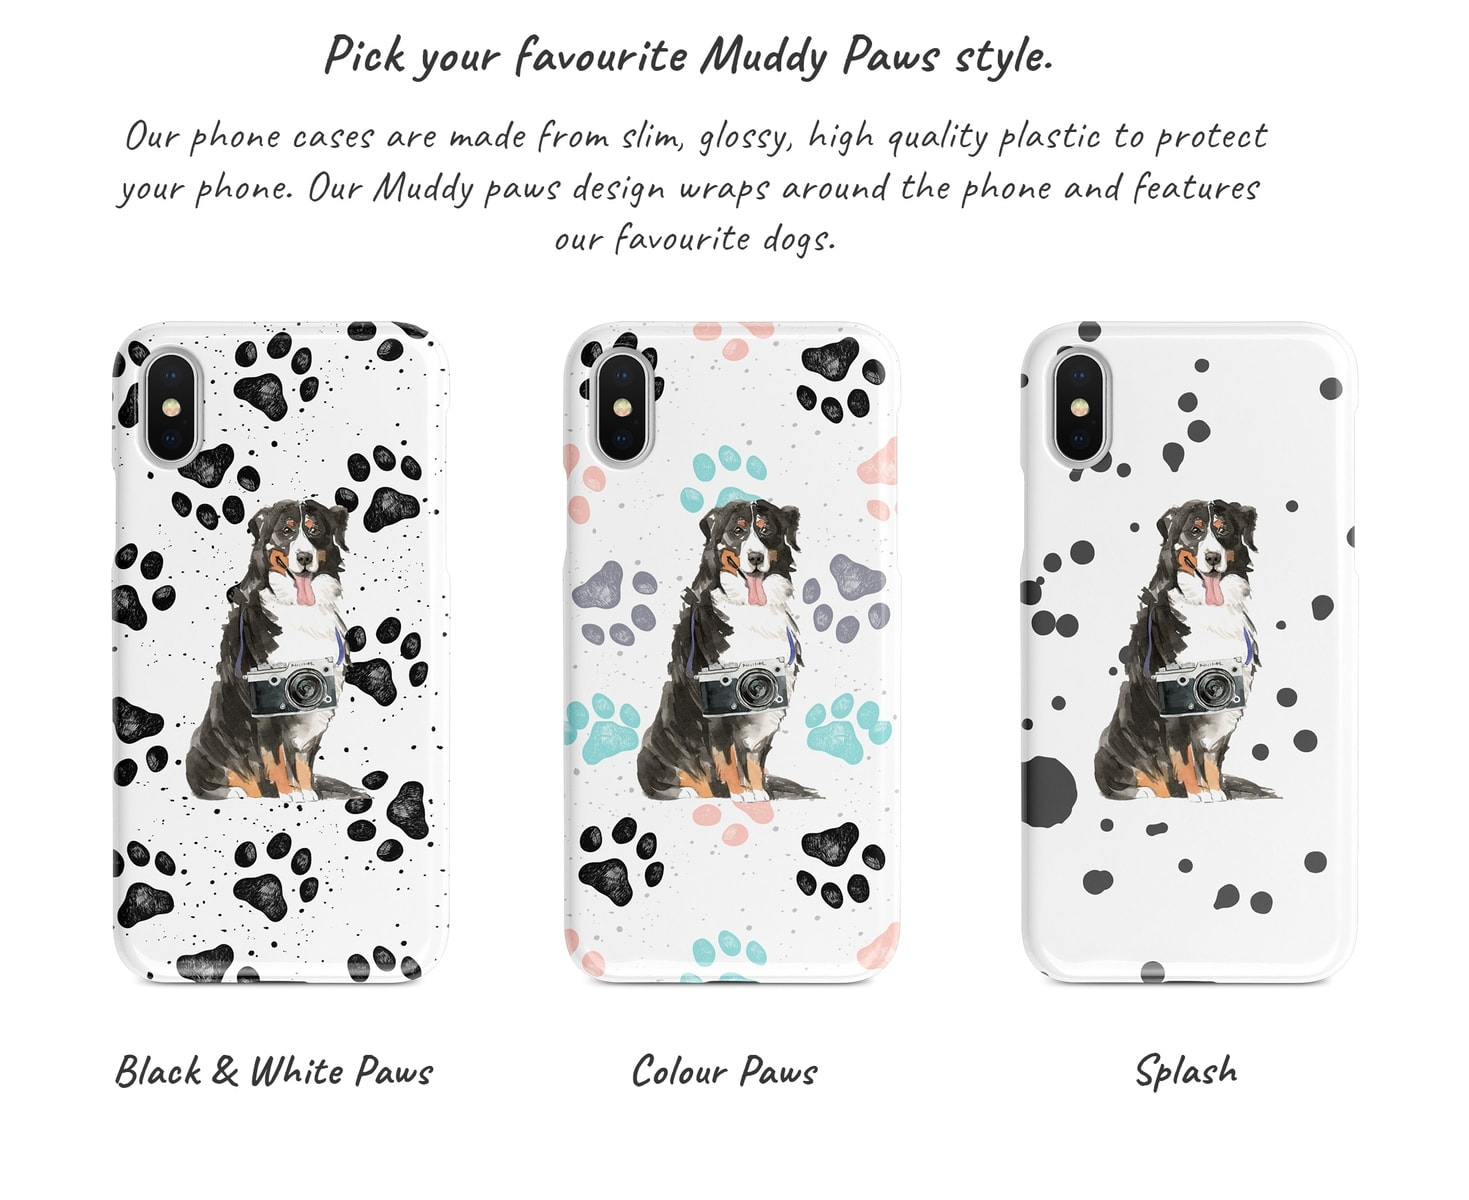 Bernese Mountain Dog Muddy Paws Phone Case 3 Different